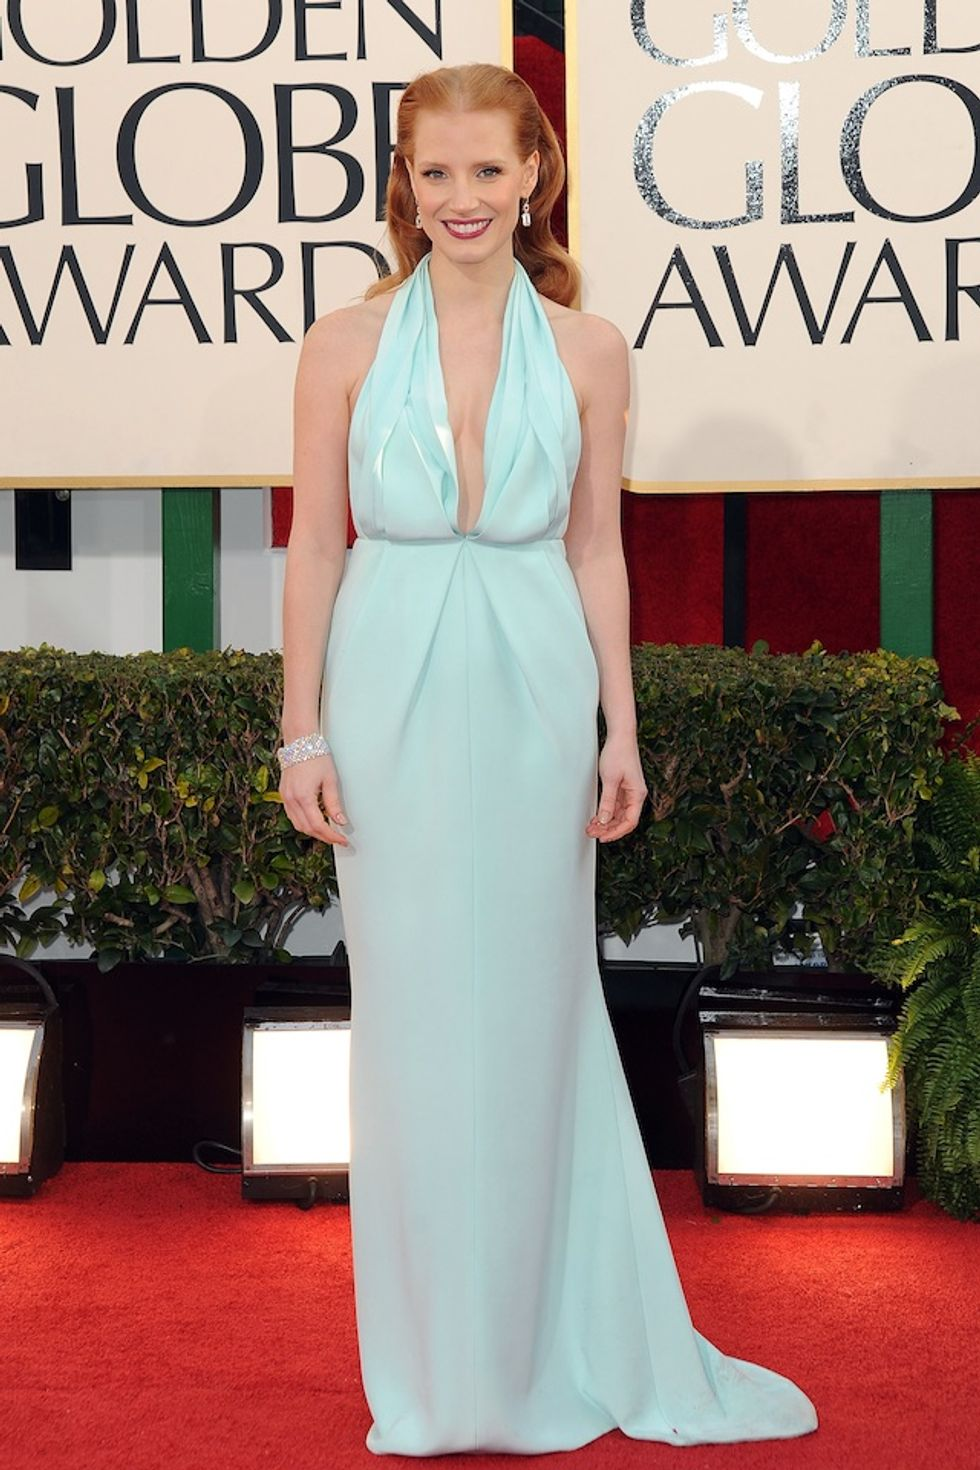 He Said, She Said: Rating the Fashion at the Golden Globes